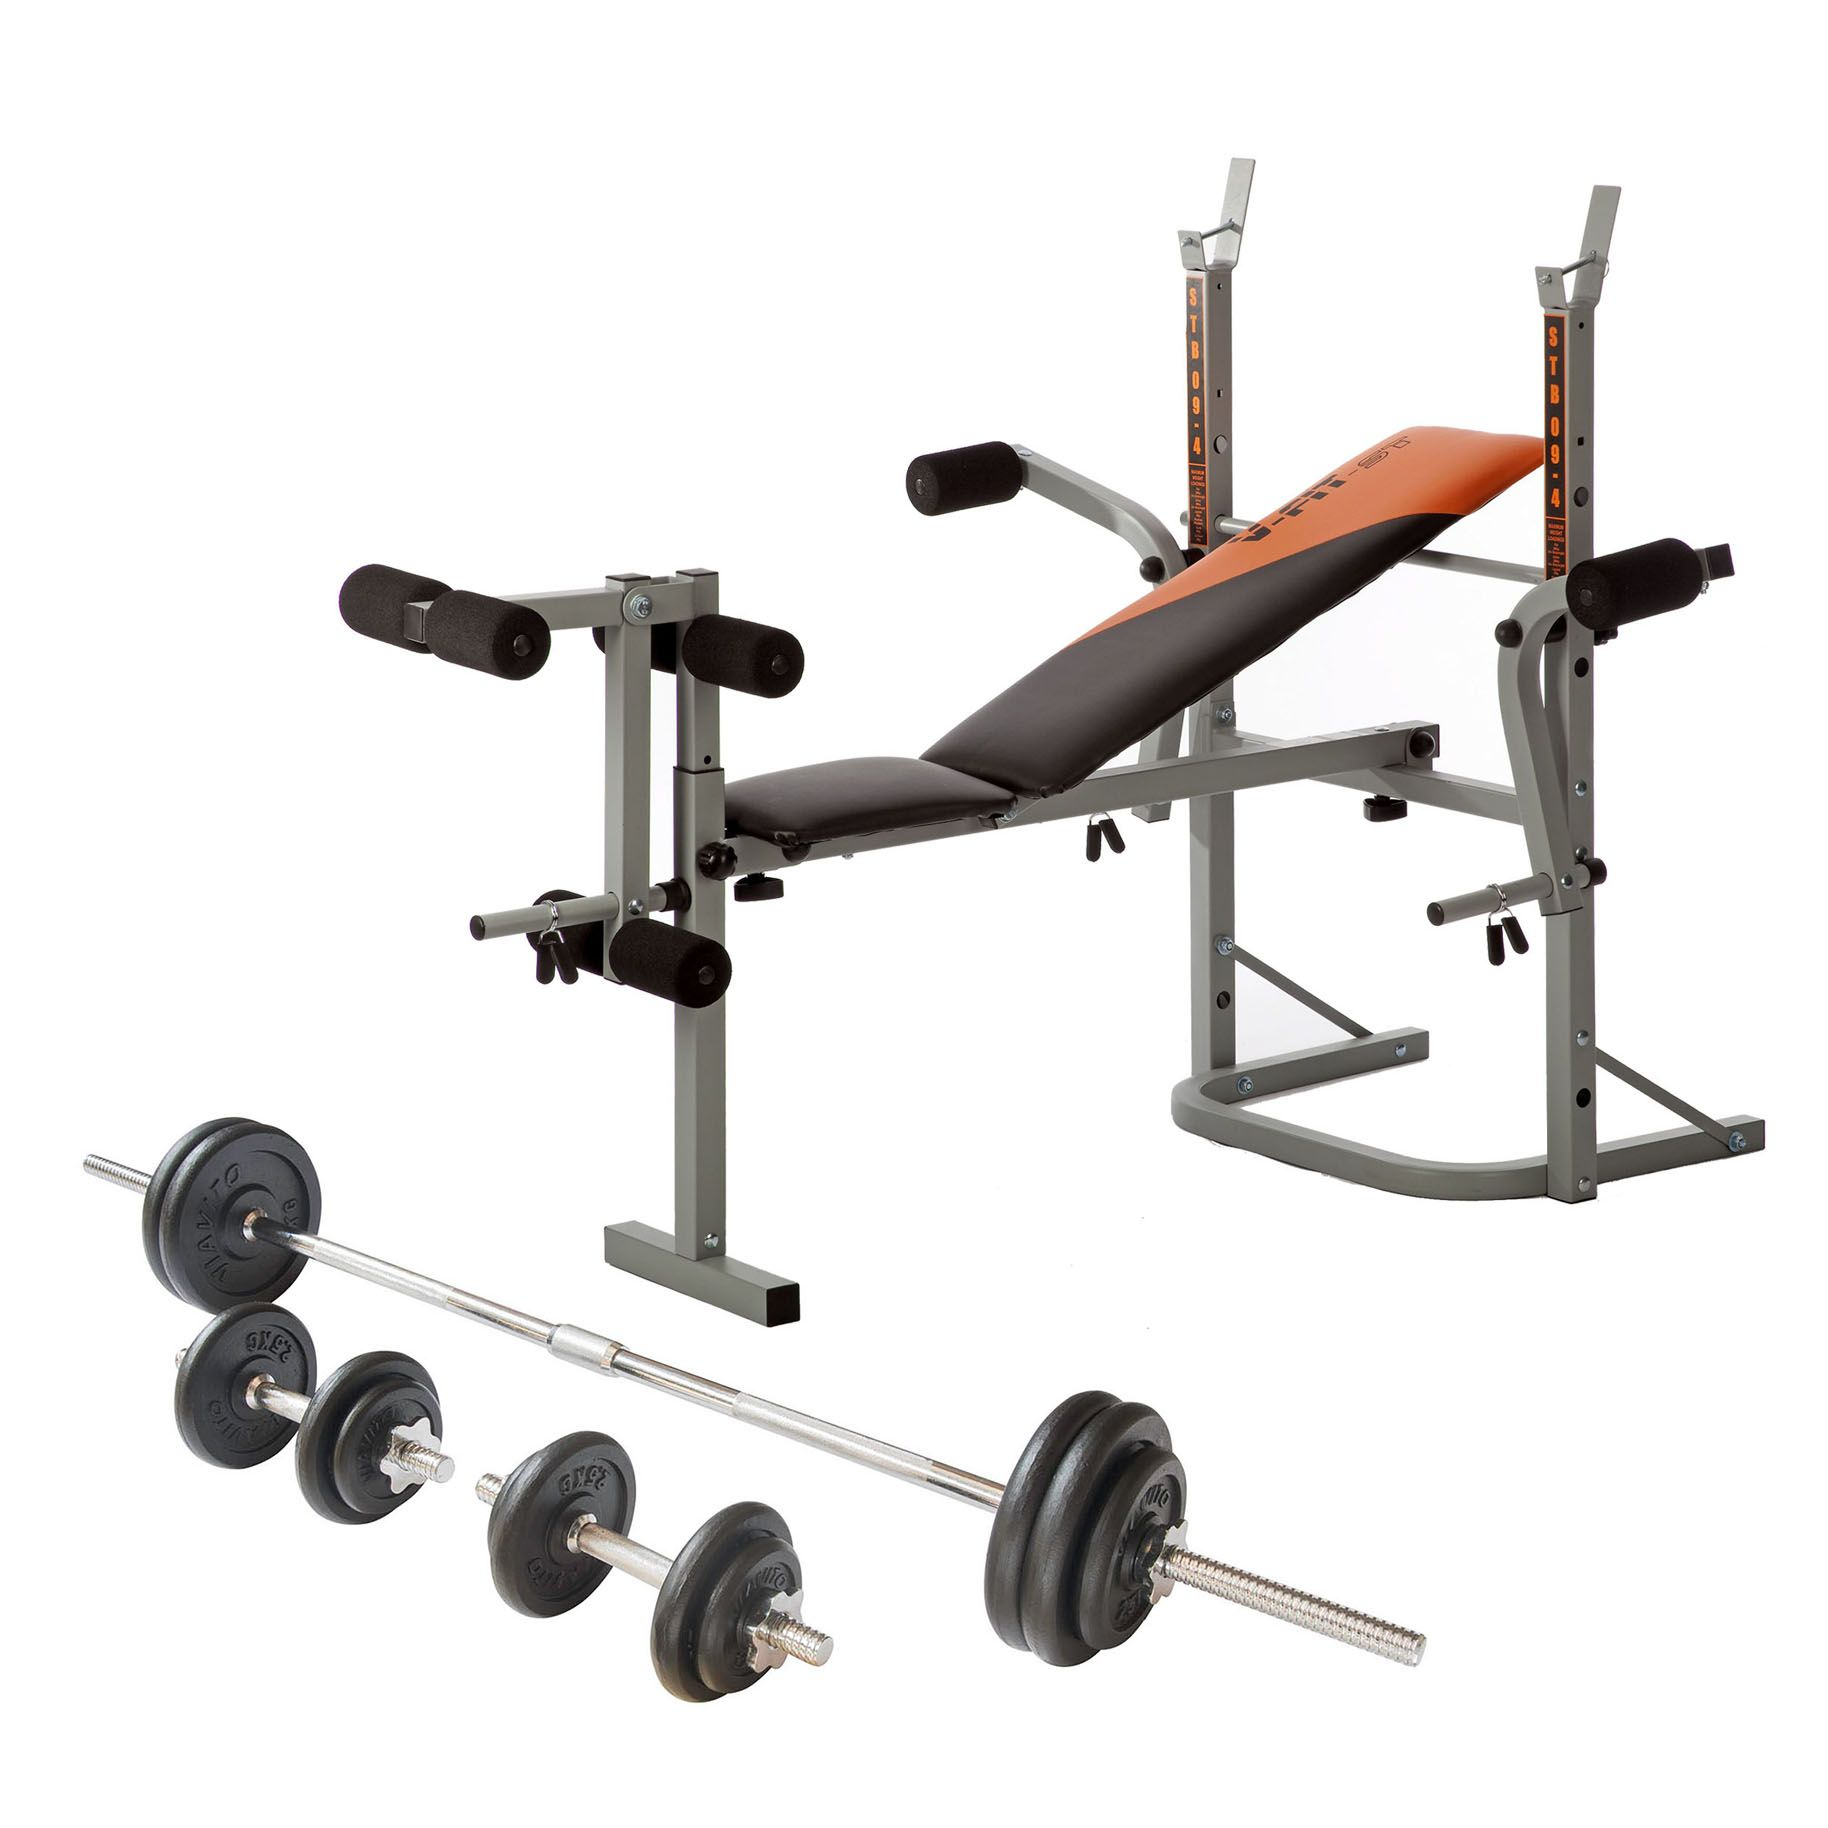 V Fit Folding Weight Bench And Viavito 50kg Cast Iron Weight Set Sweatband Com